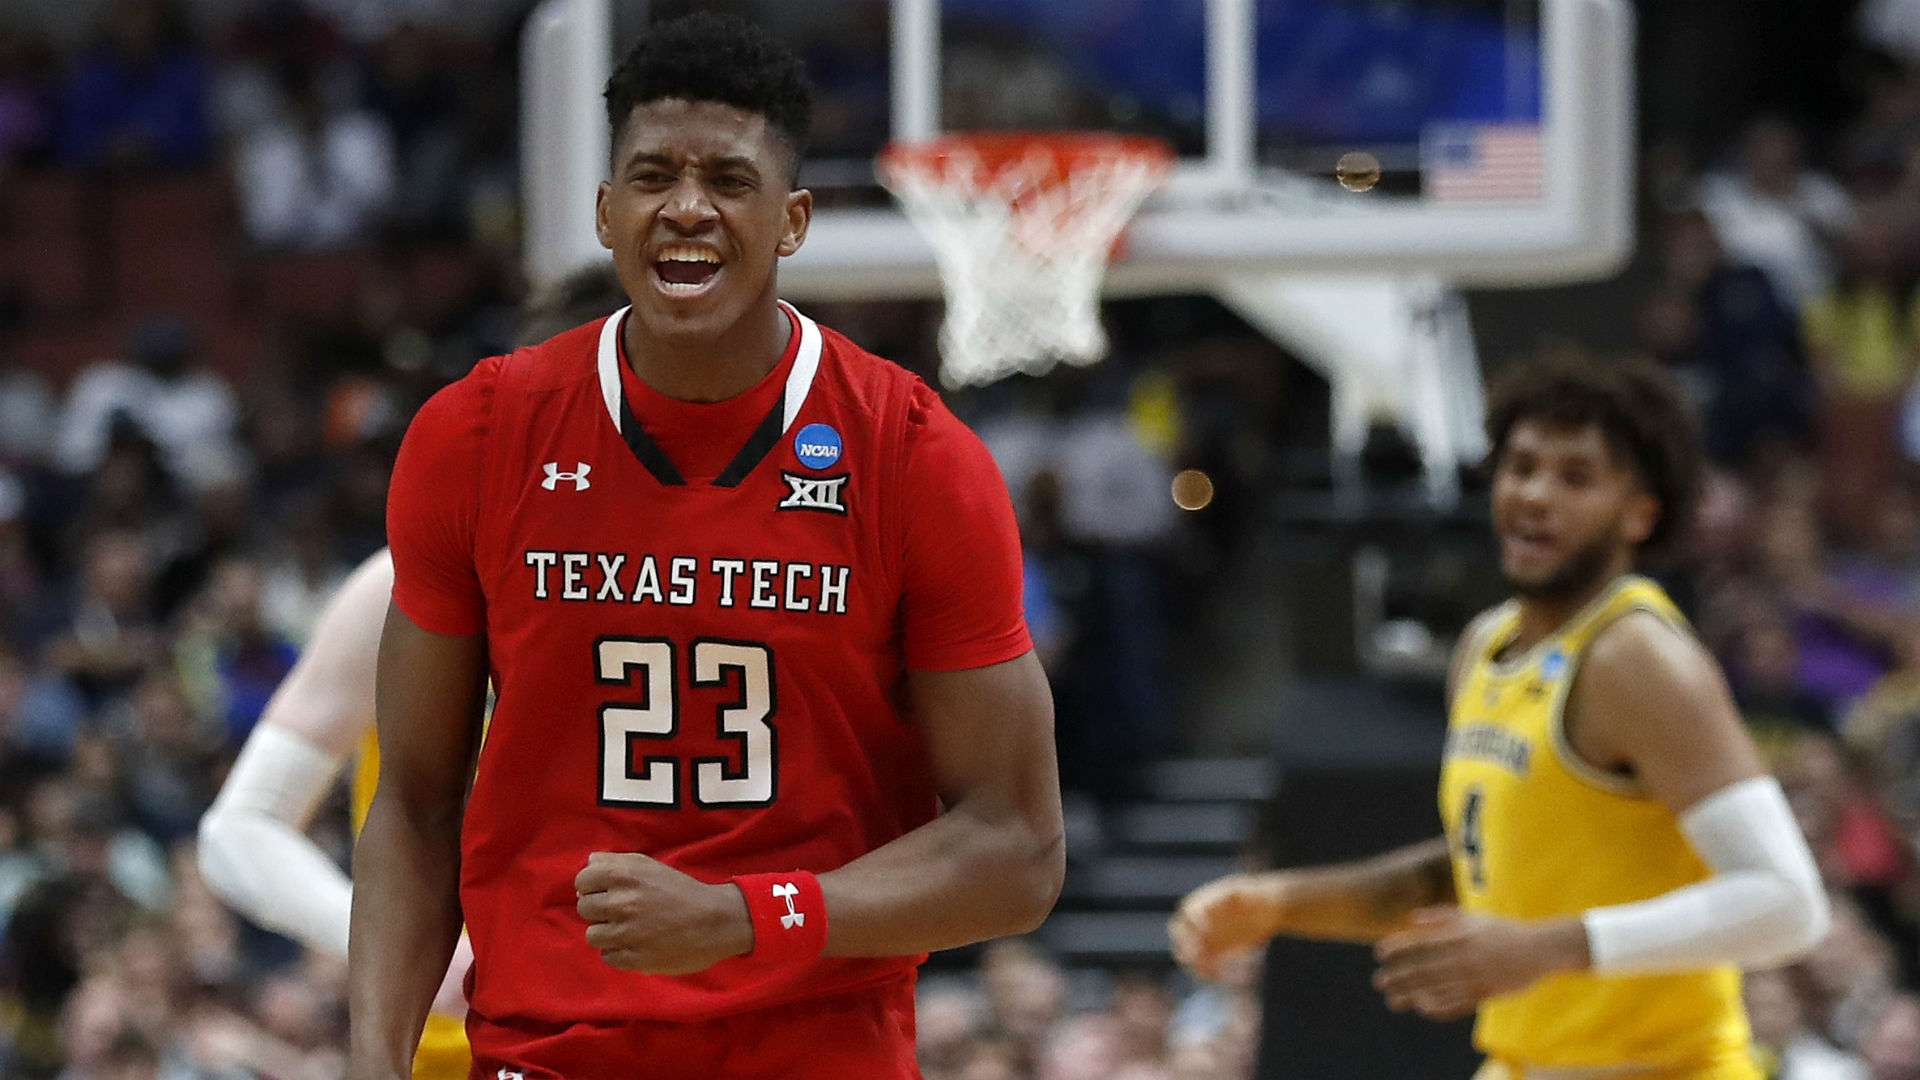 NBA Draft 2019 Big Board: Who are the top prospects in this year's